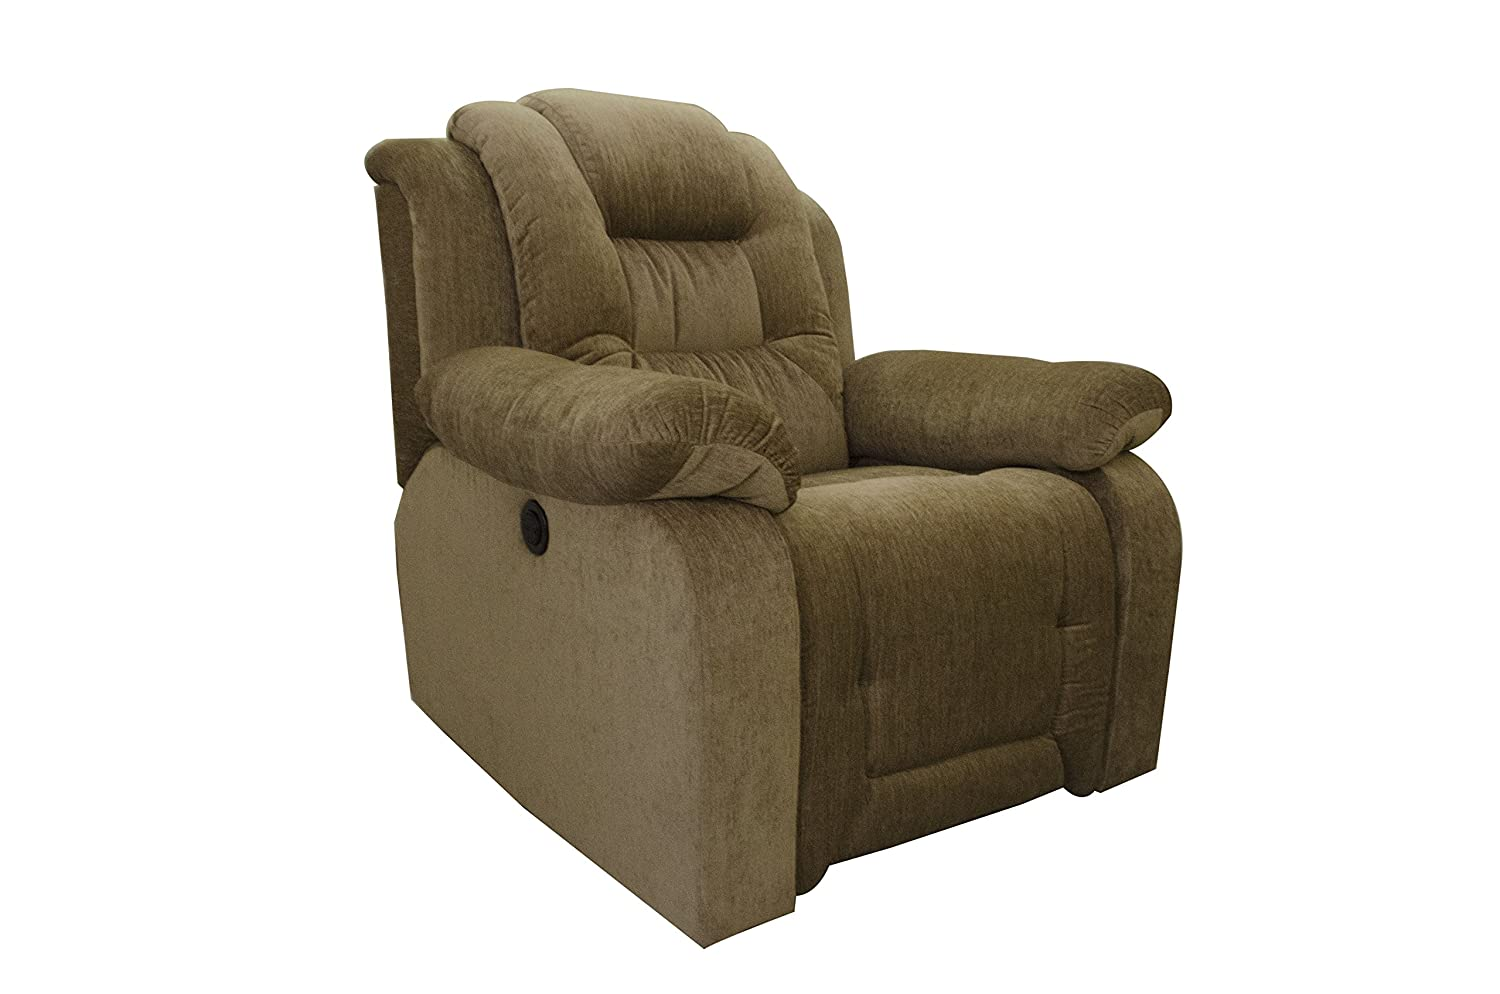 8.AE Designs Motorized Fabric Recliner in Olive Brown